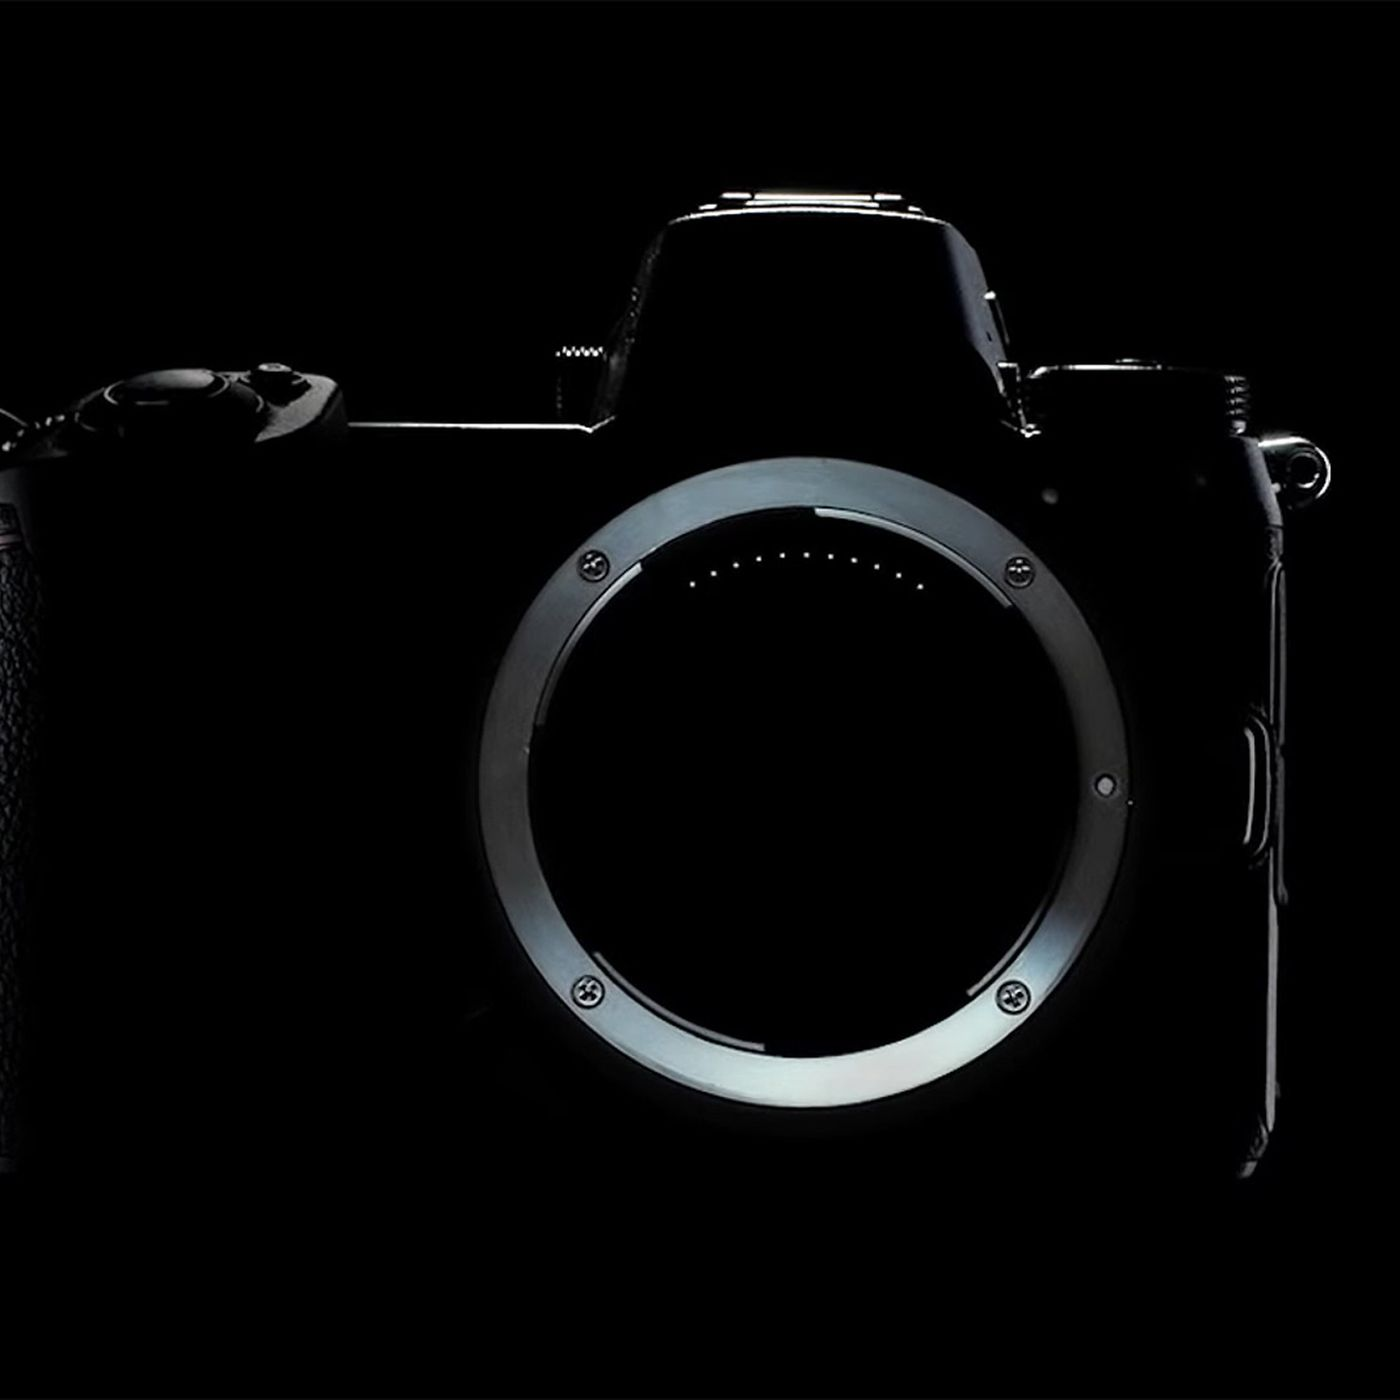 Nikon teases full-frame mirrorless camera with a series of cool ...